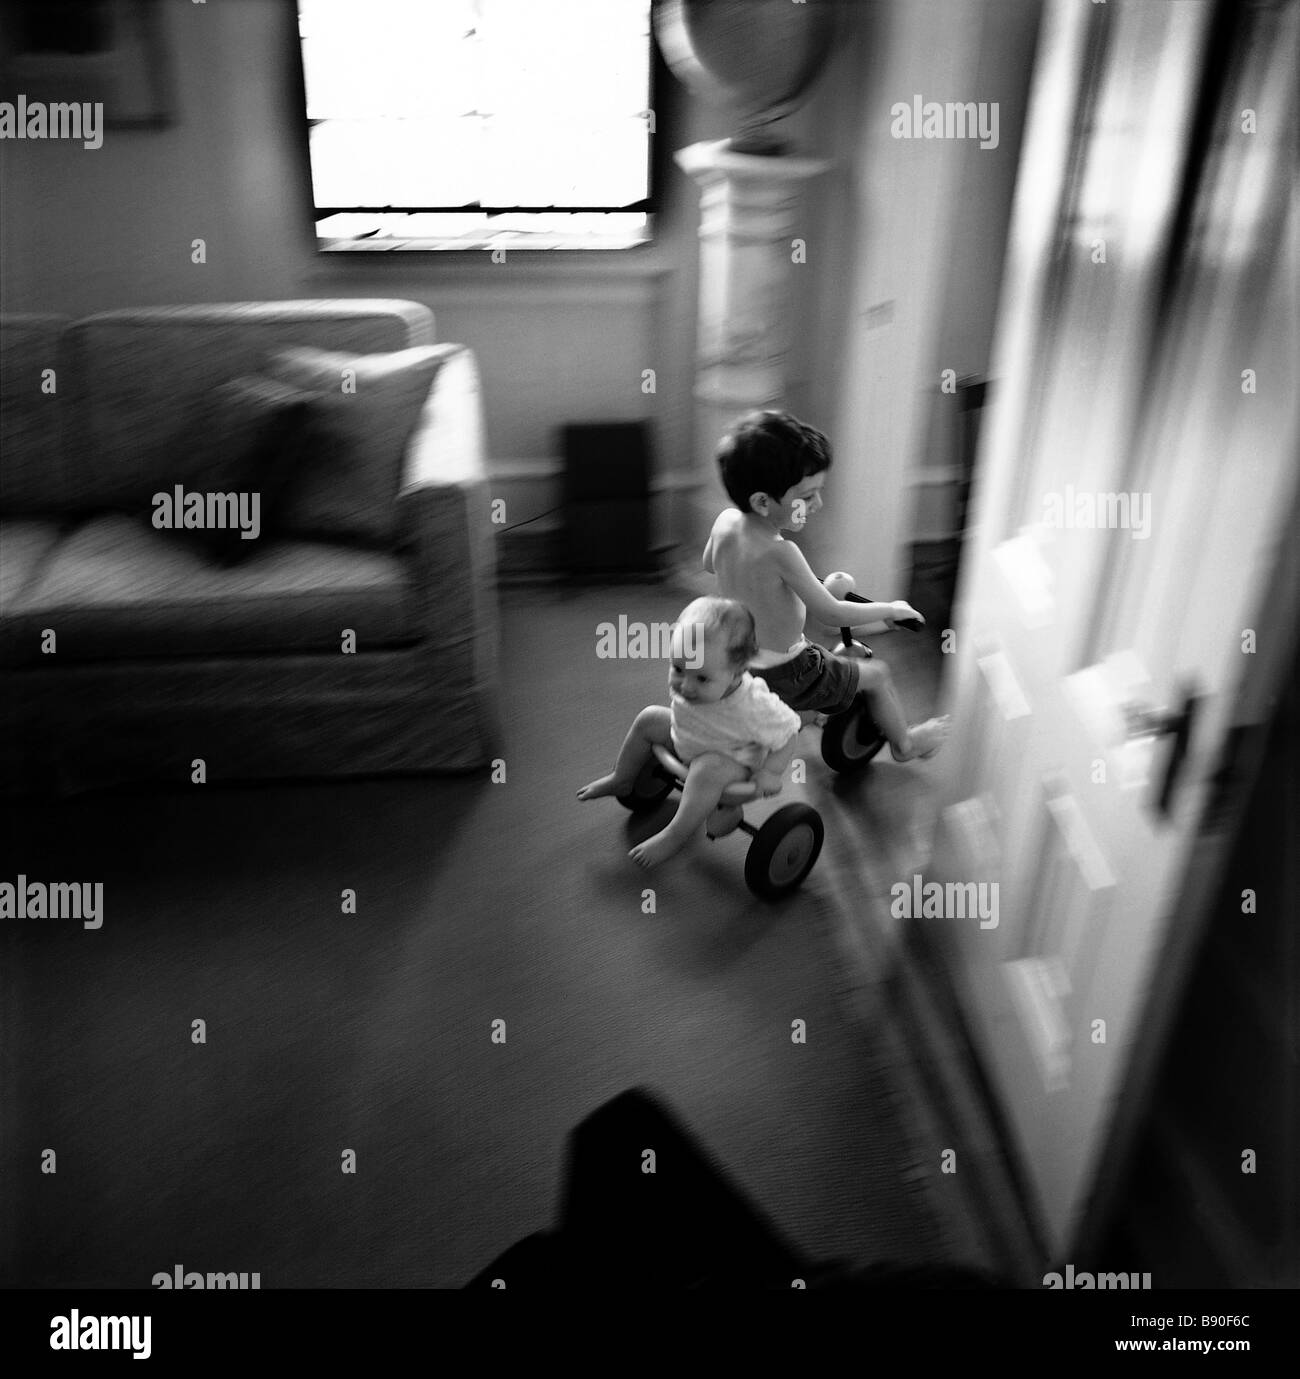 FL2671, NICK KELSH; Children tricycle riding through house - Stock Image